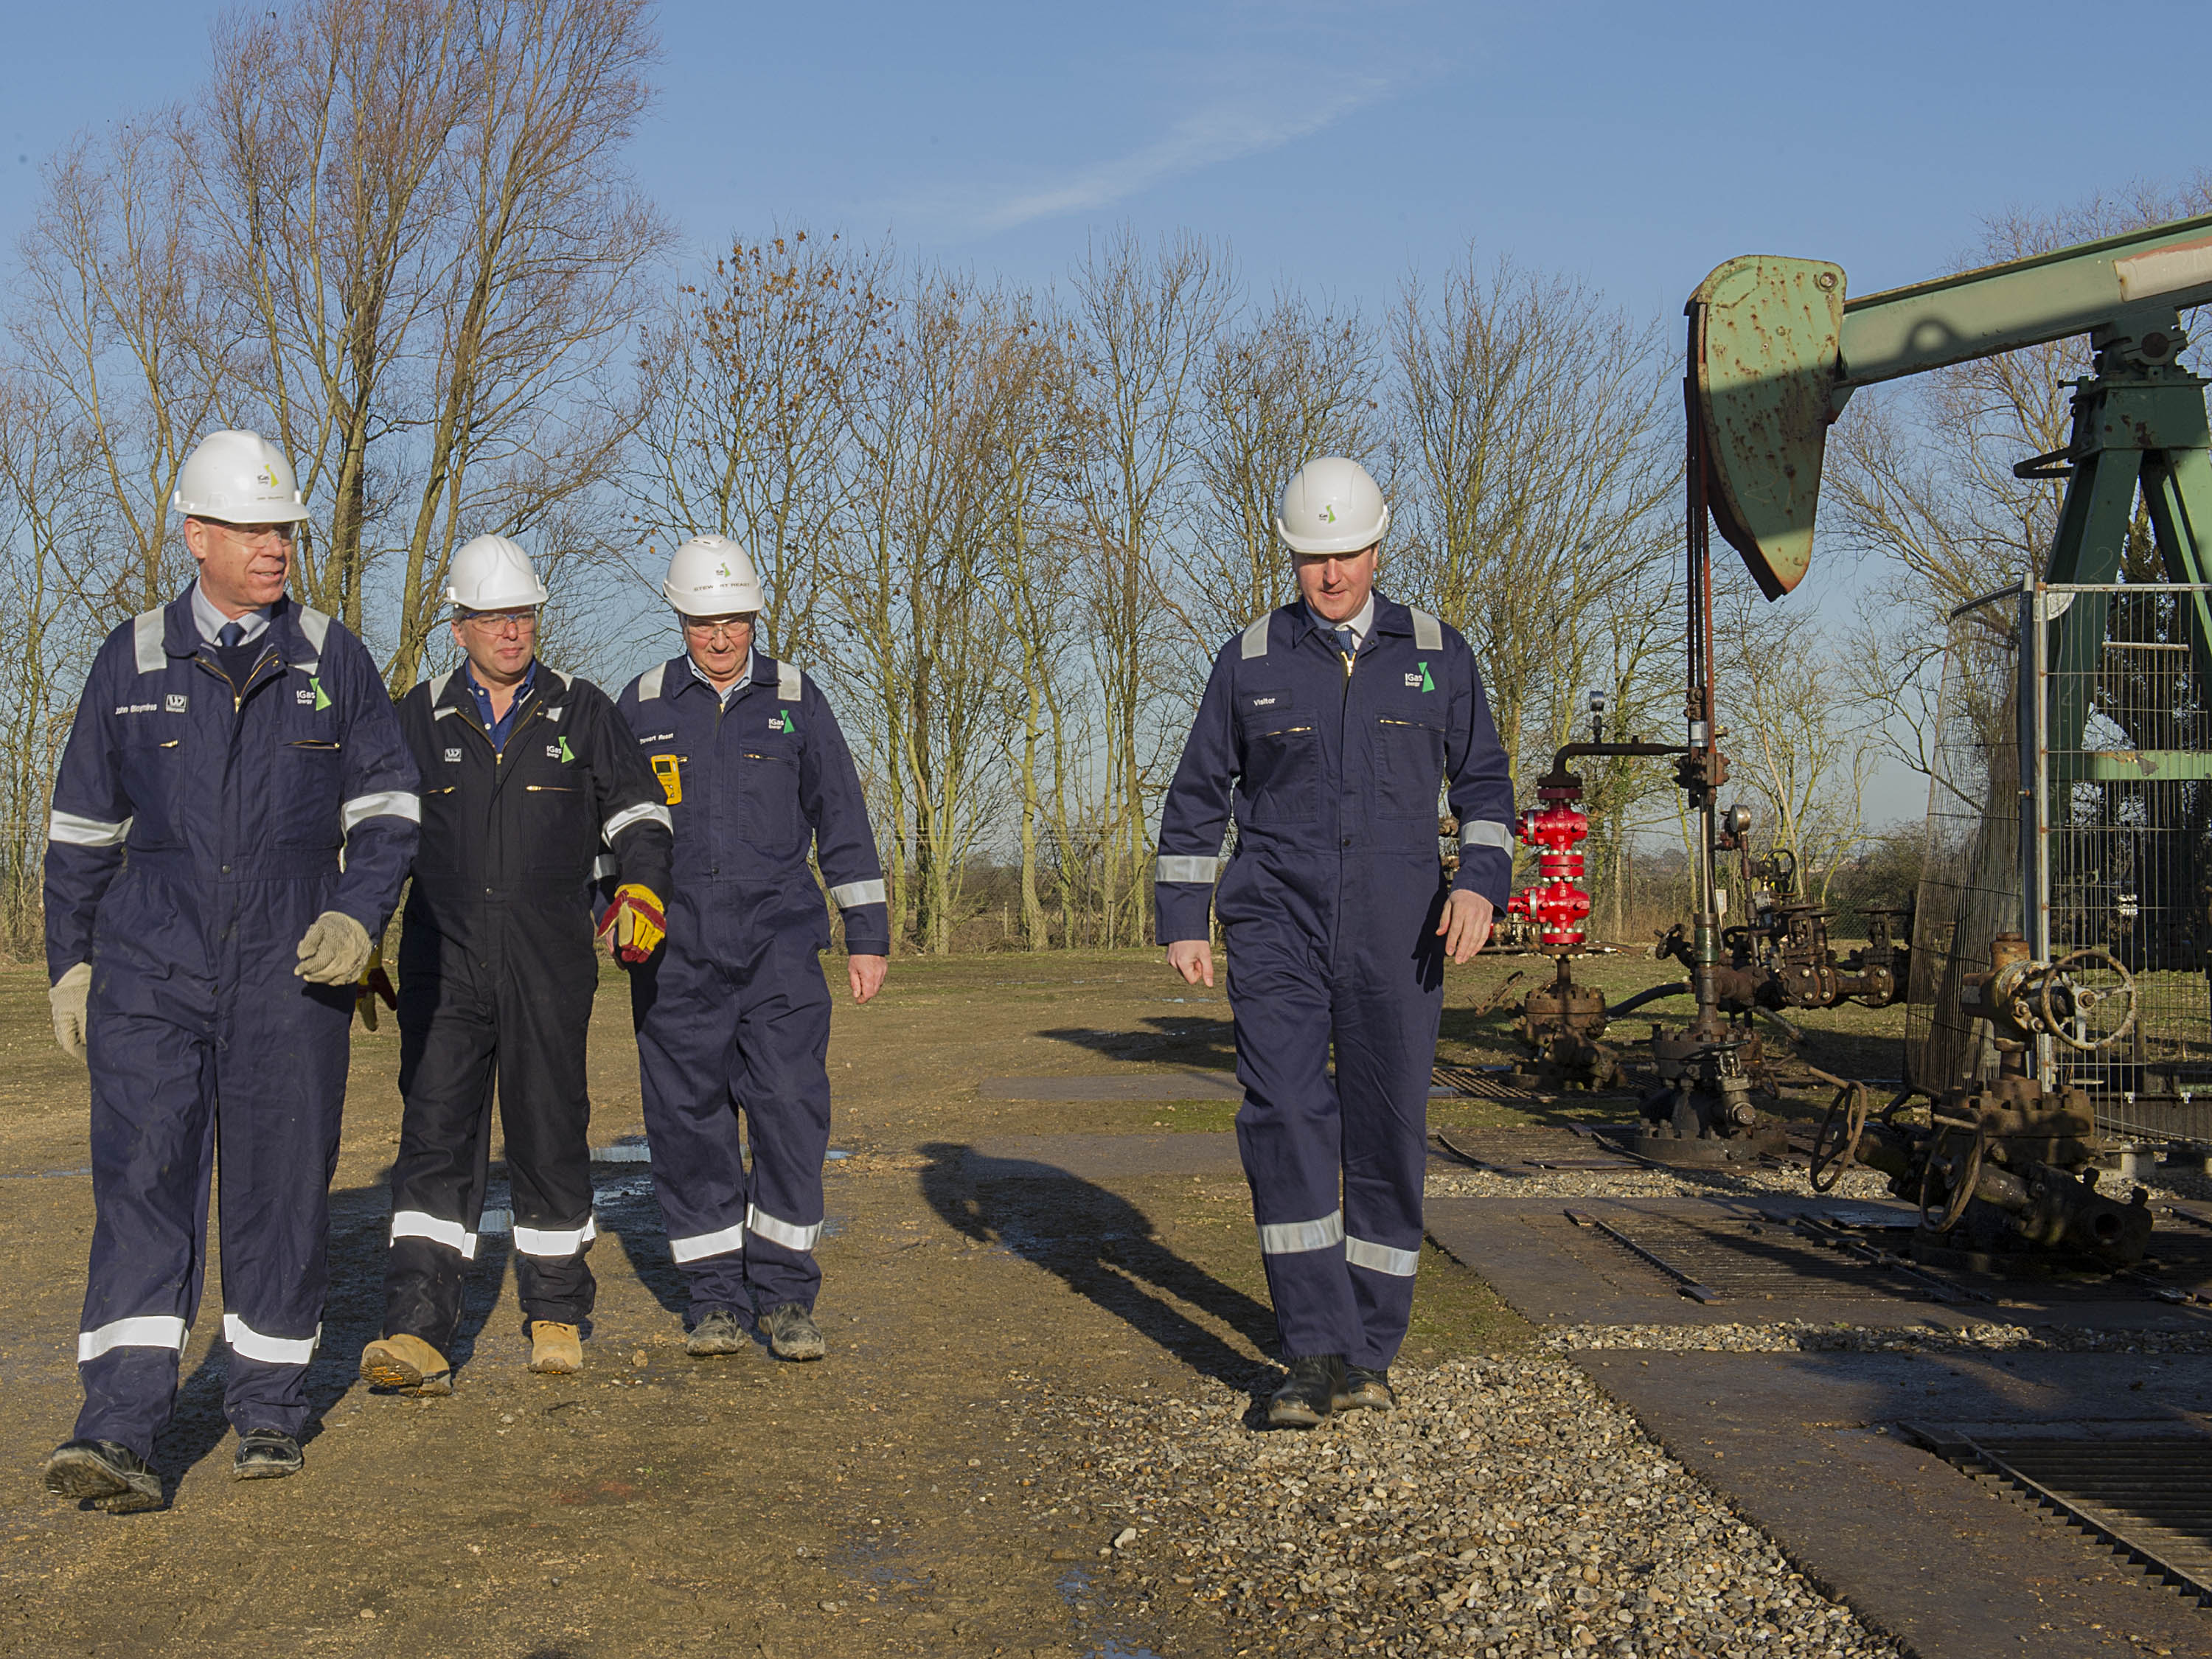 PM's Energy visit to IGas - Gainsborough